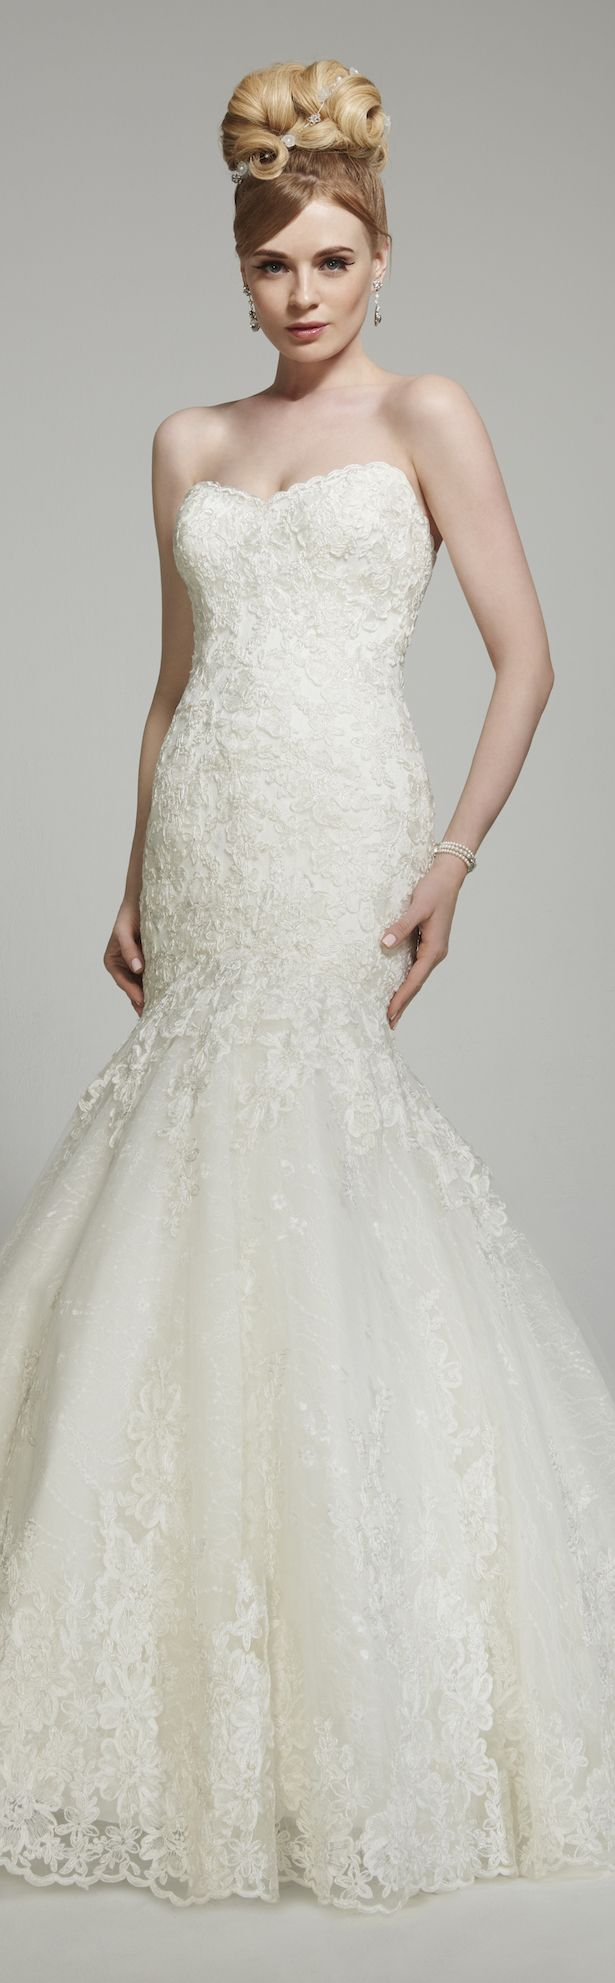 Matty 2016 by Matthew Christopher Bridal Collection - Raquel Wedding Dress